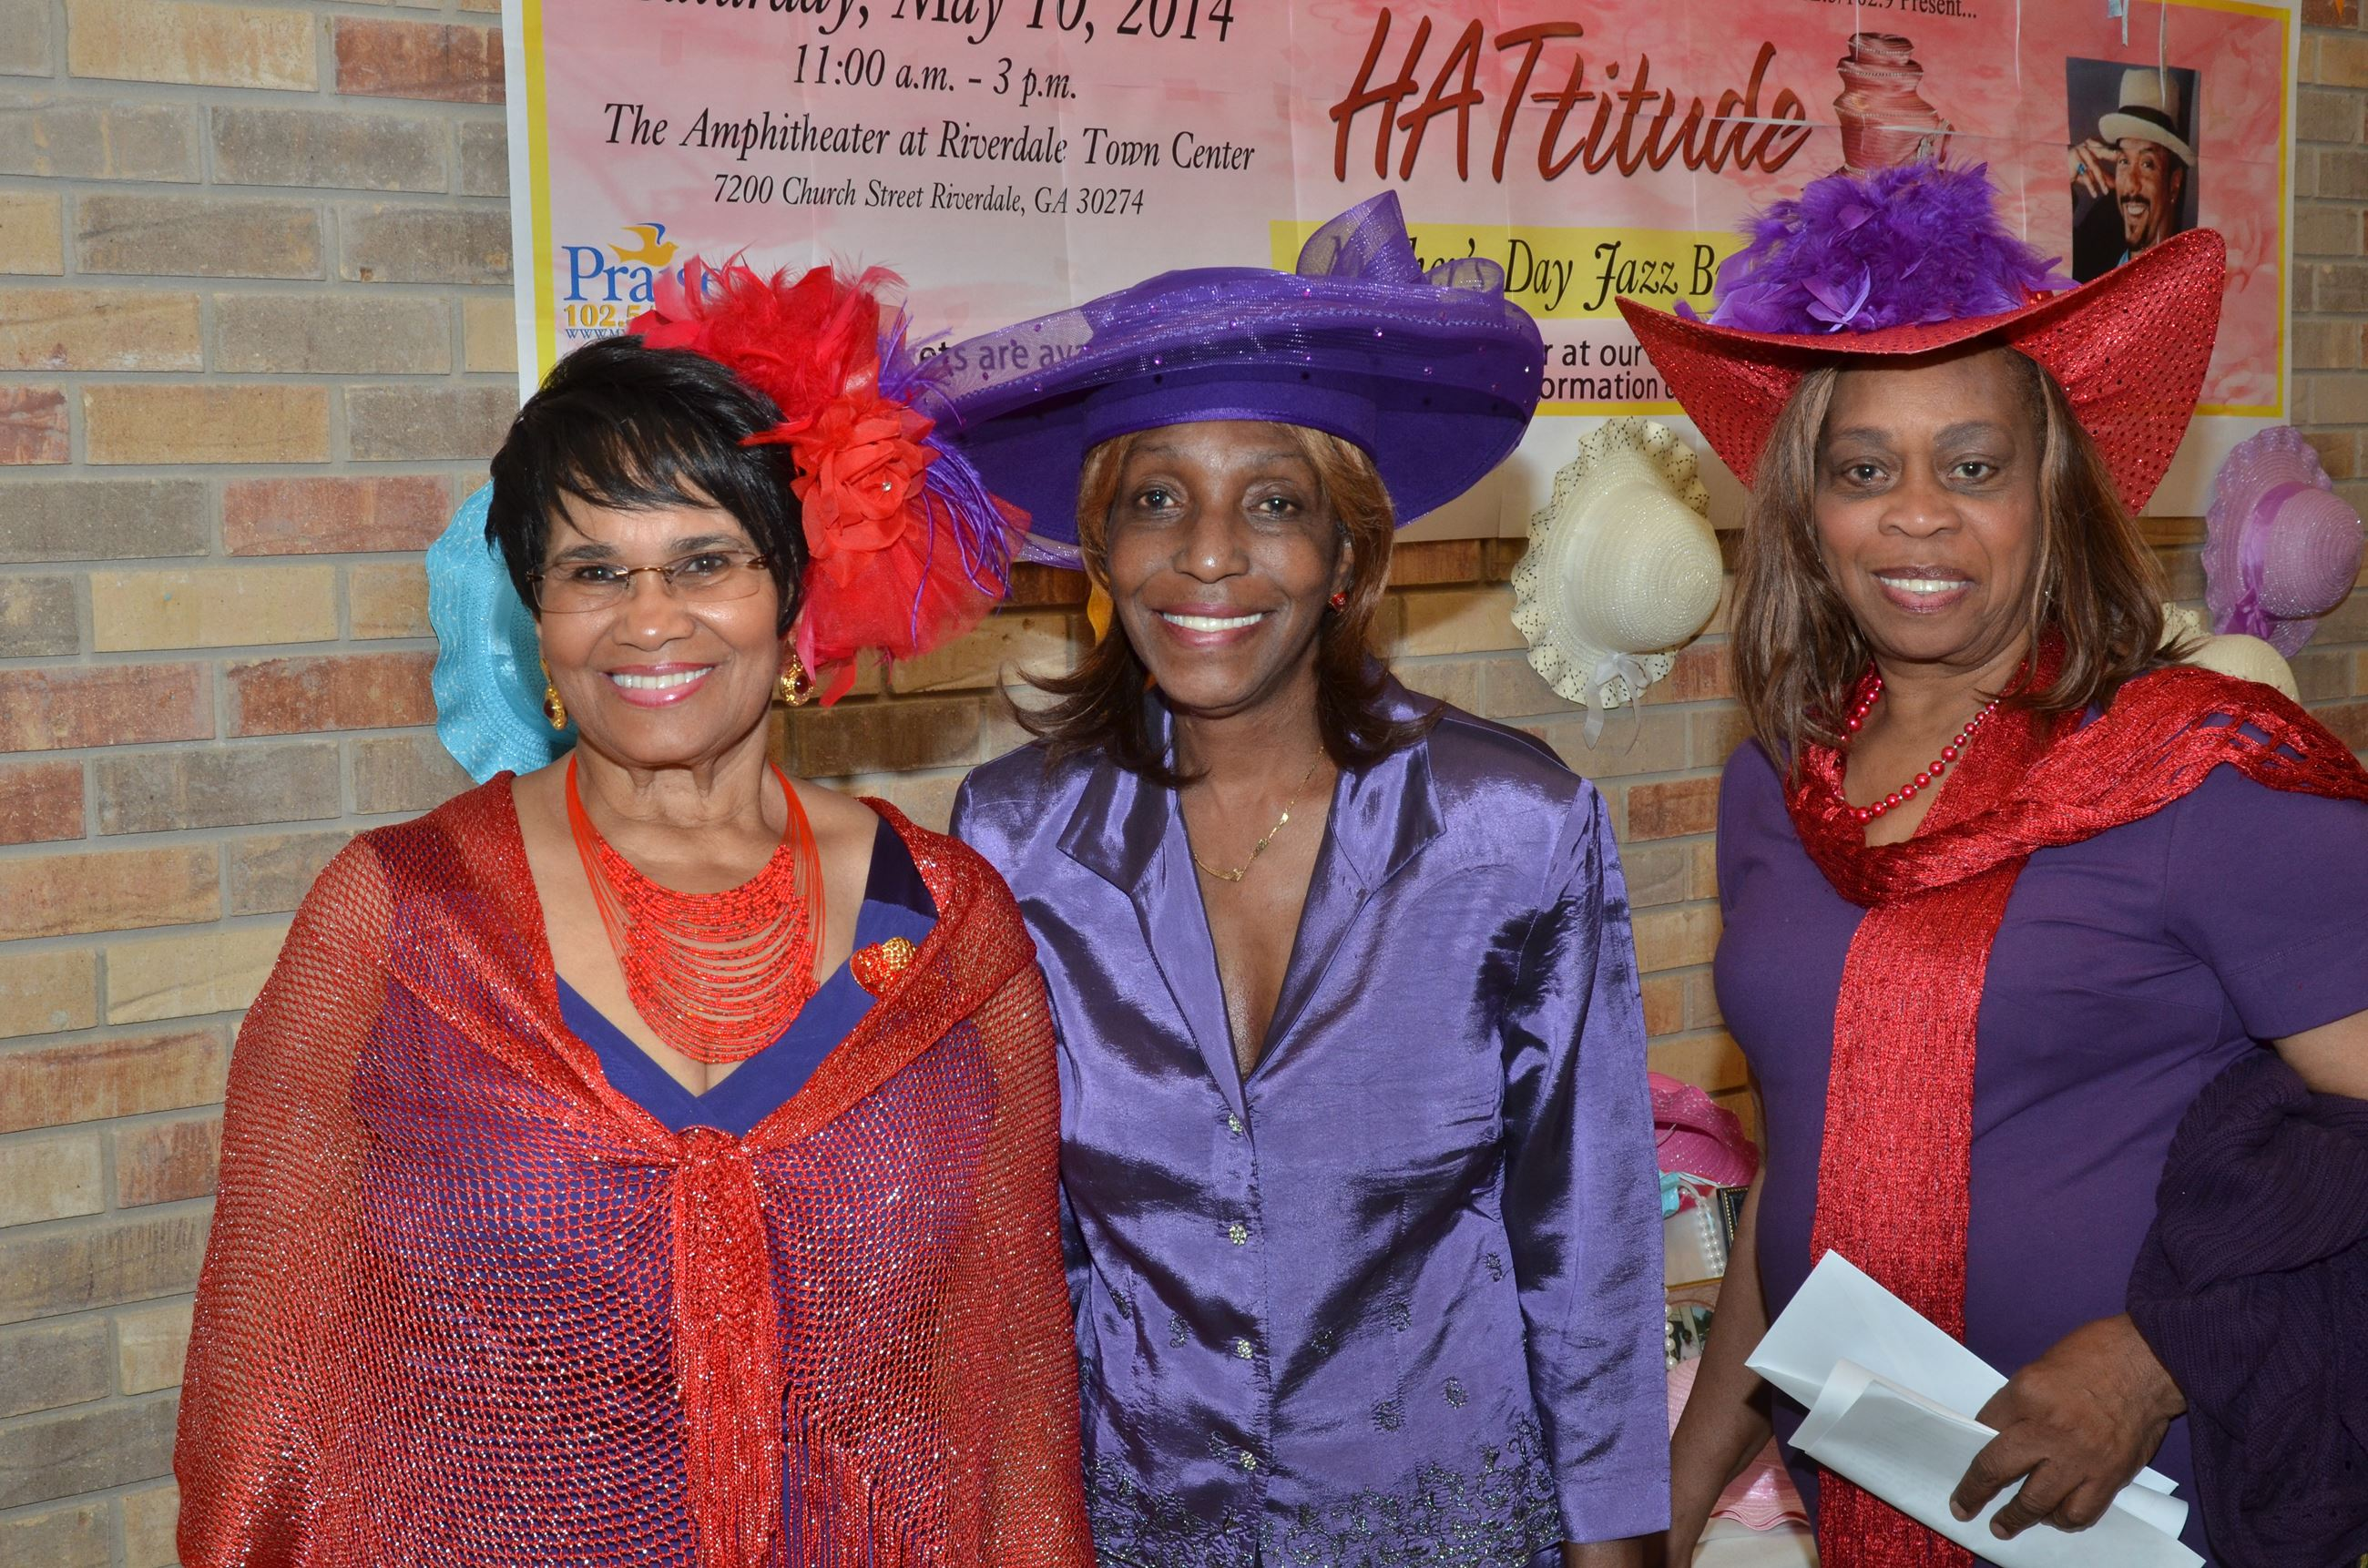 Women in Red and Purple Hats and Clothes